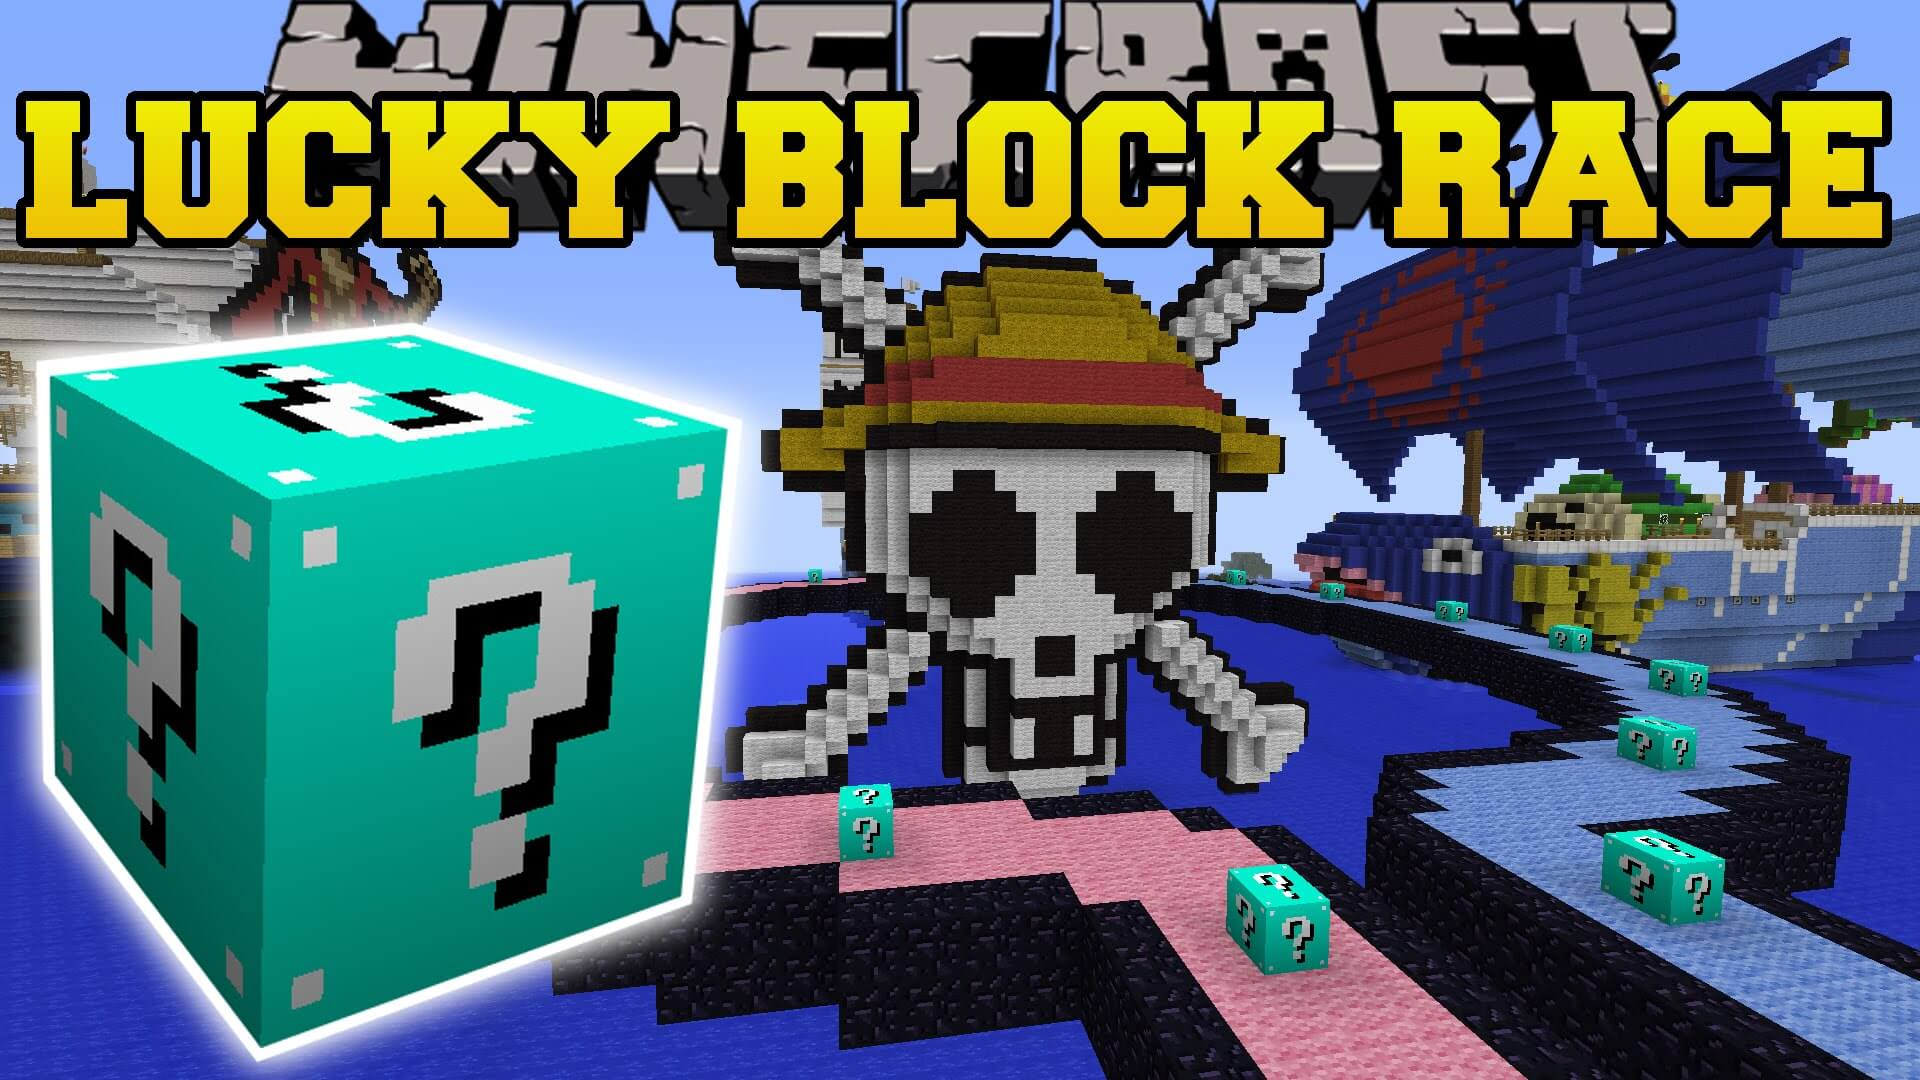 The Luckiest Block - Lucky Block Race скриншот 1